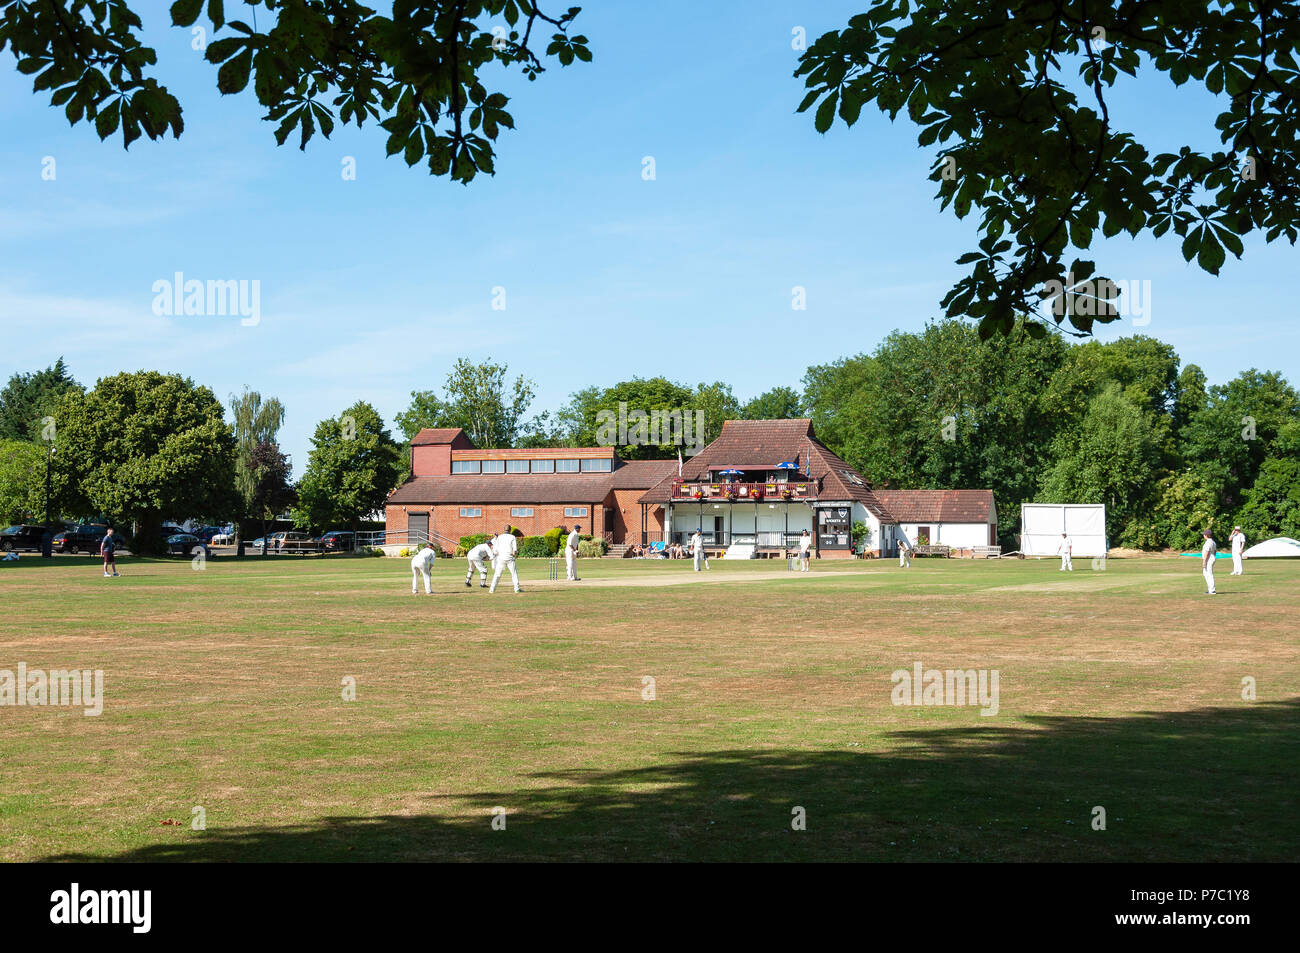 Cricket match at Waysbury Cricket Club, The Green, Wraysbury, Berkshire, England, United Kingdom - Stock Image